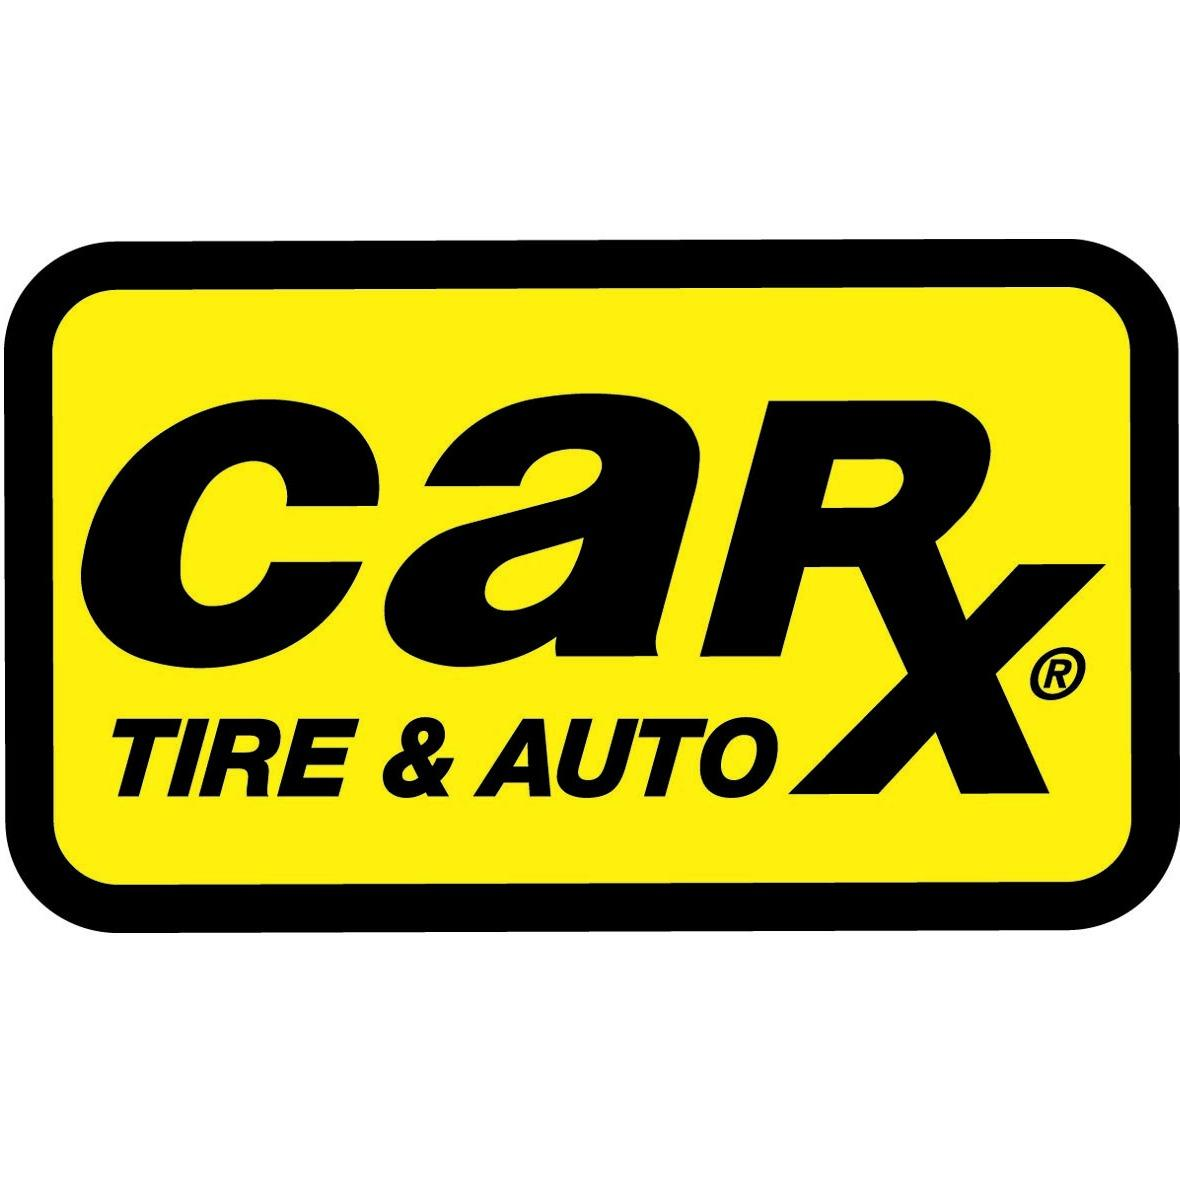 Car-X Tire & Auto - Indianapolis, IN - Auto Body Repair & Painting